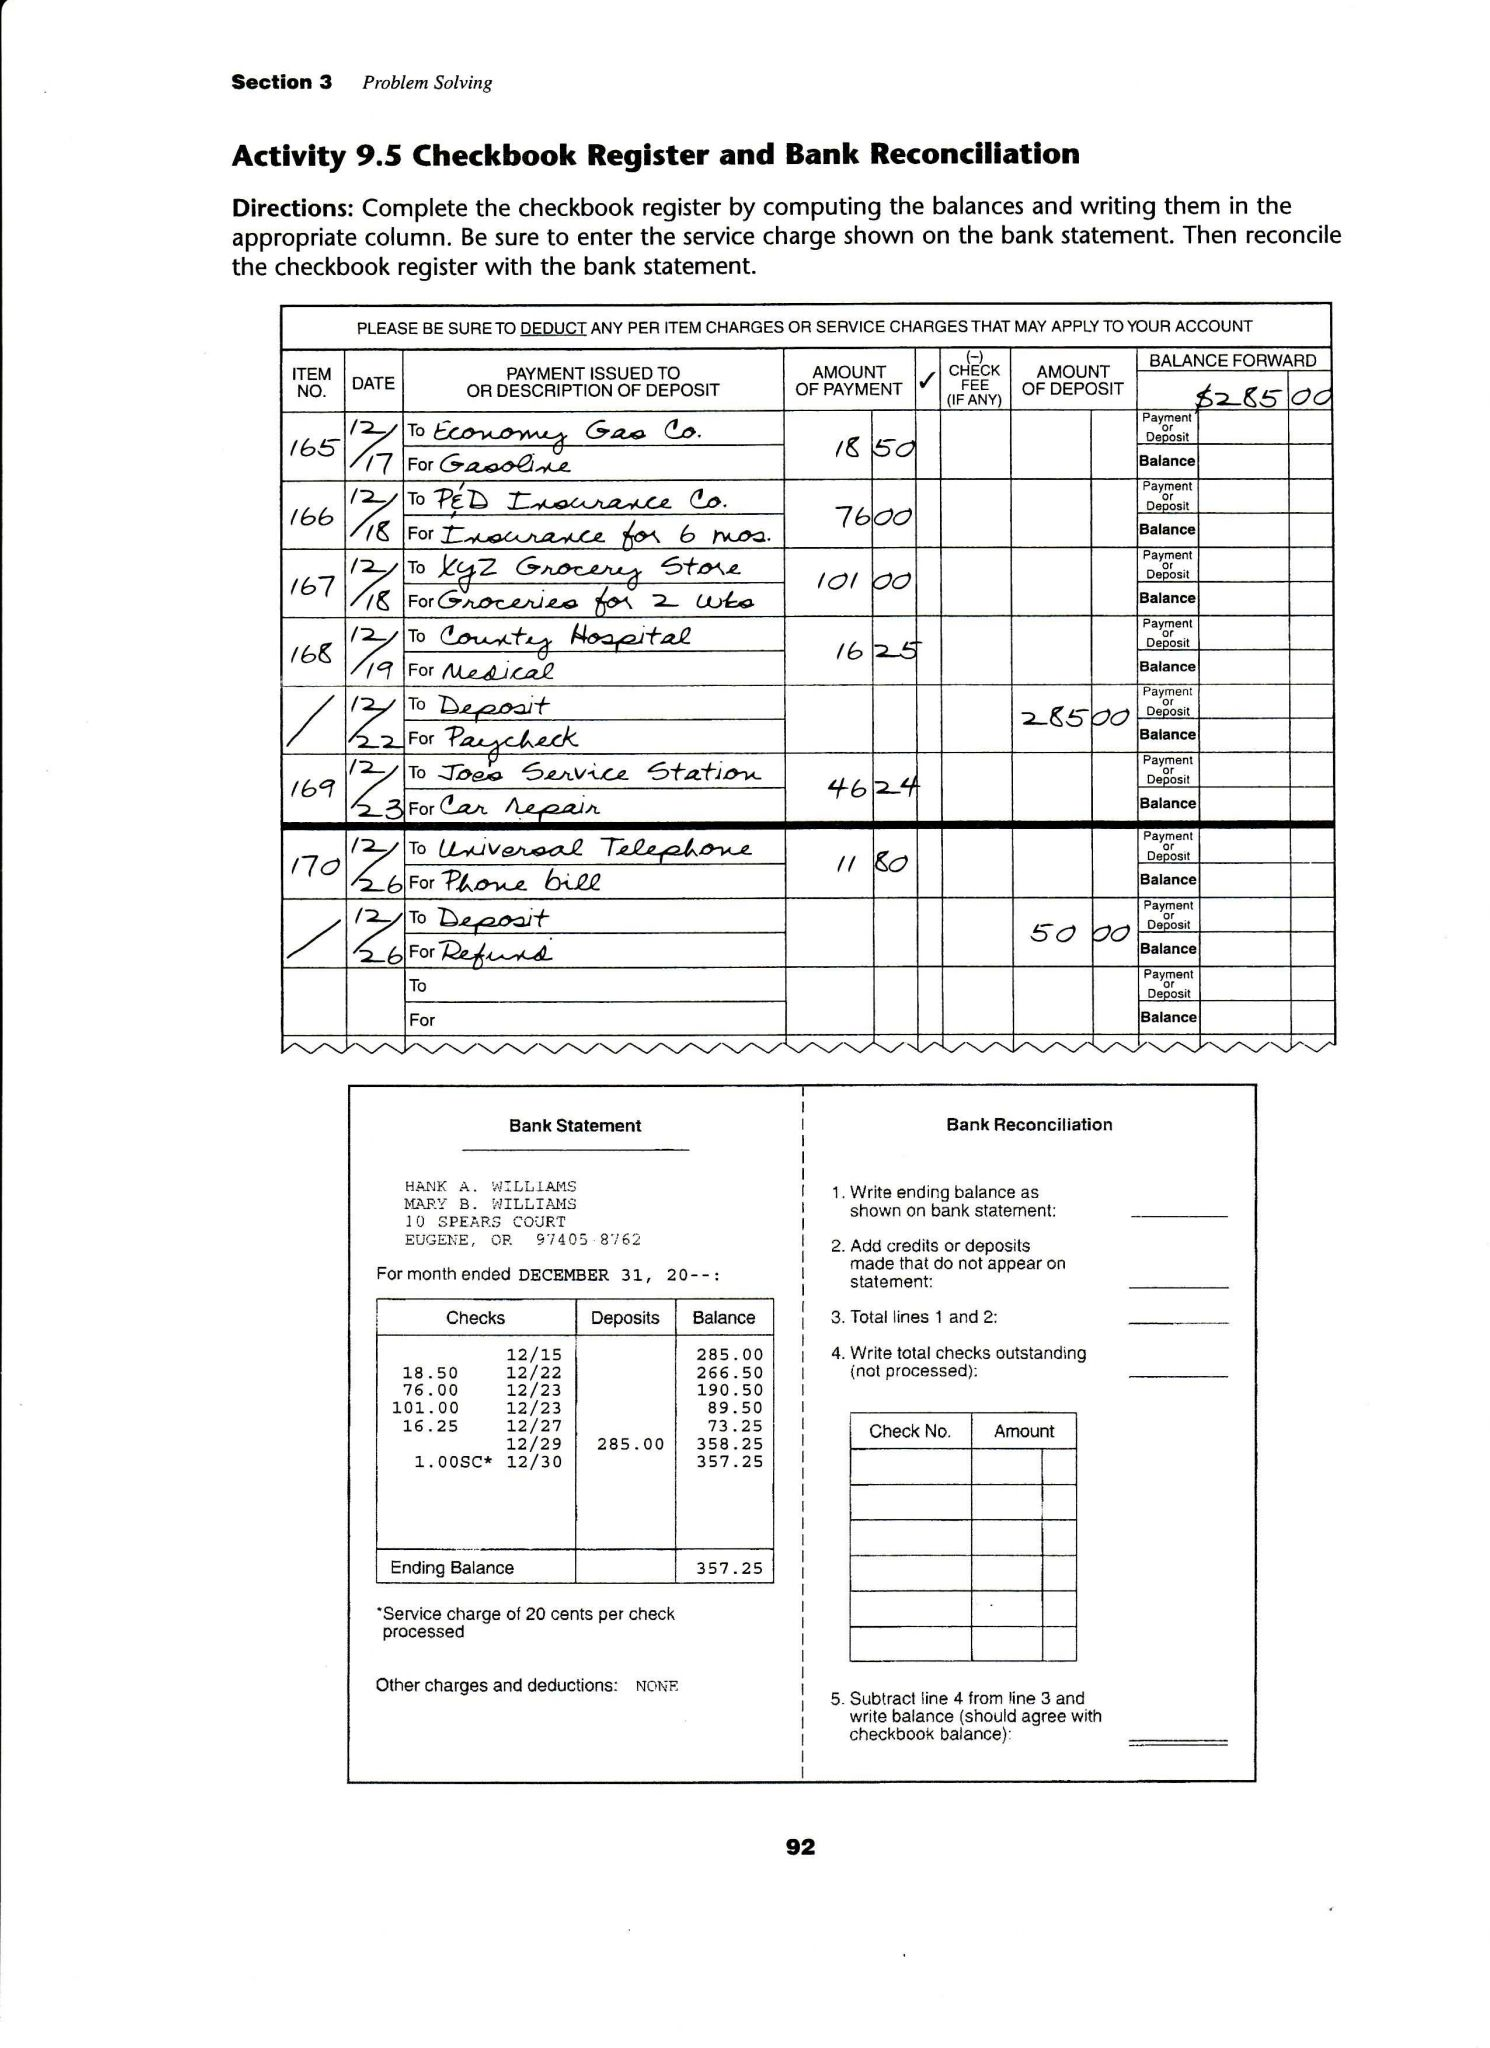 Managing A Checking Account Worksheet Answers Also Check Register Worksheet for Students Image Collections Worksheet